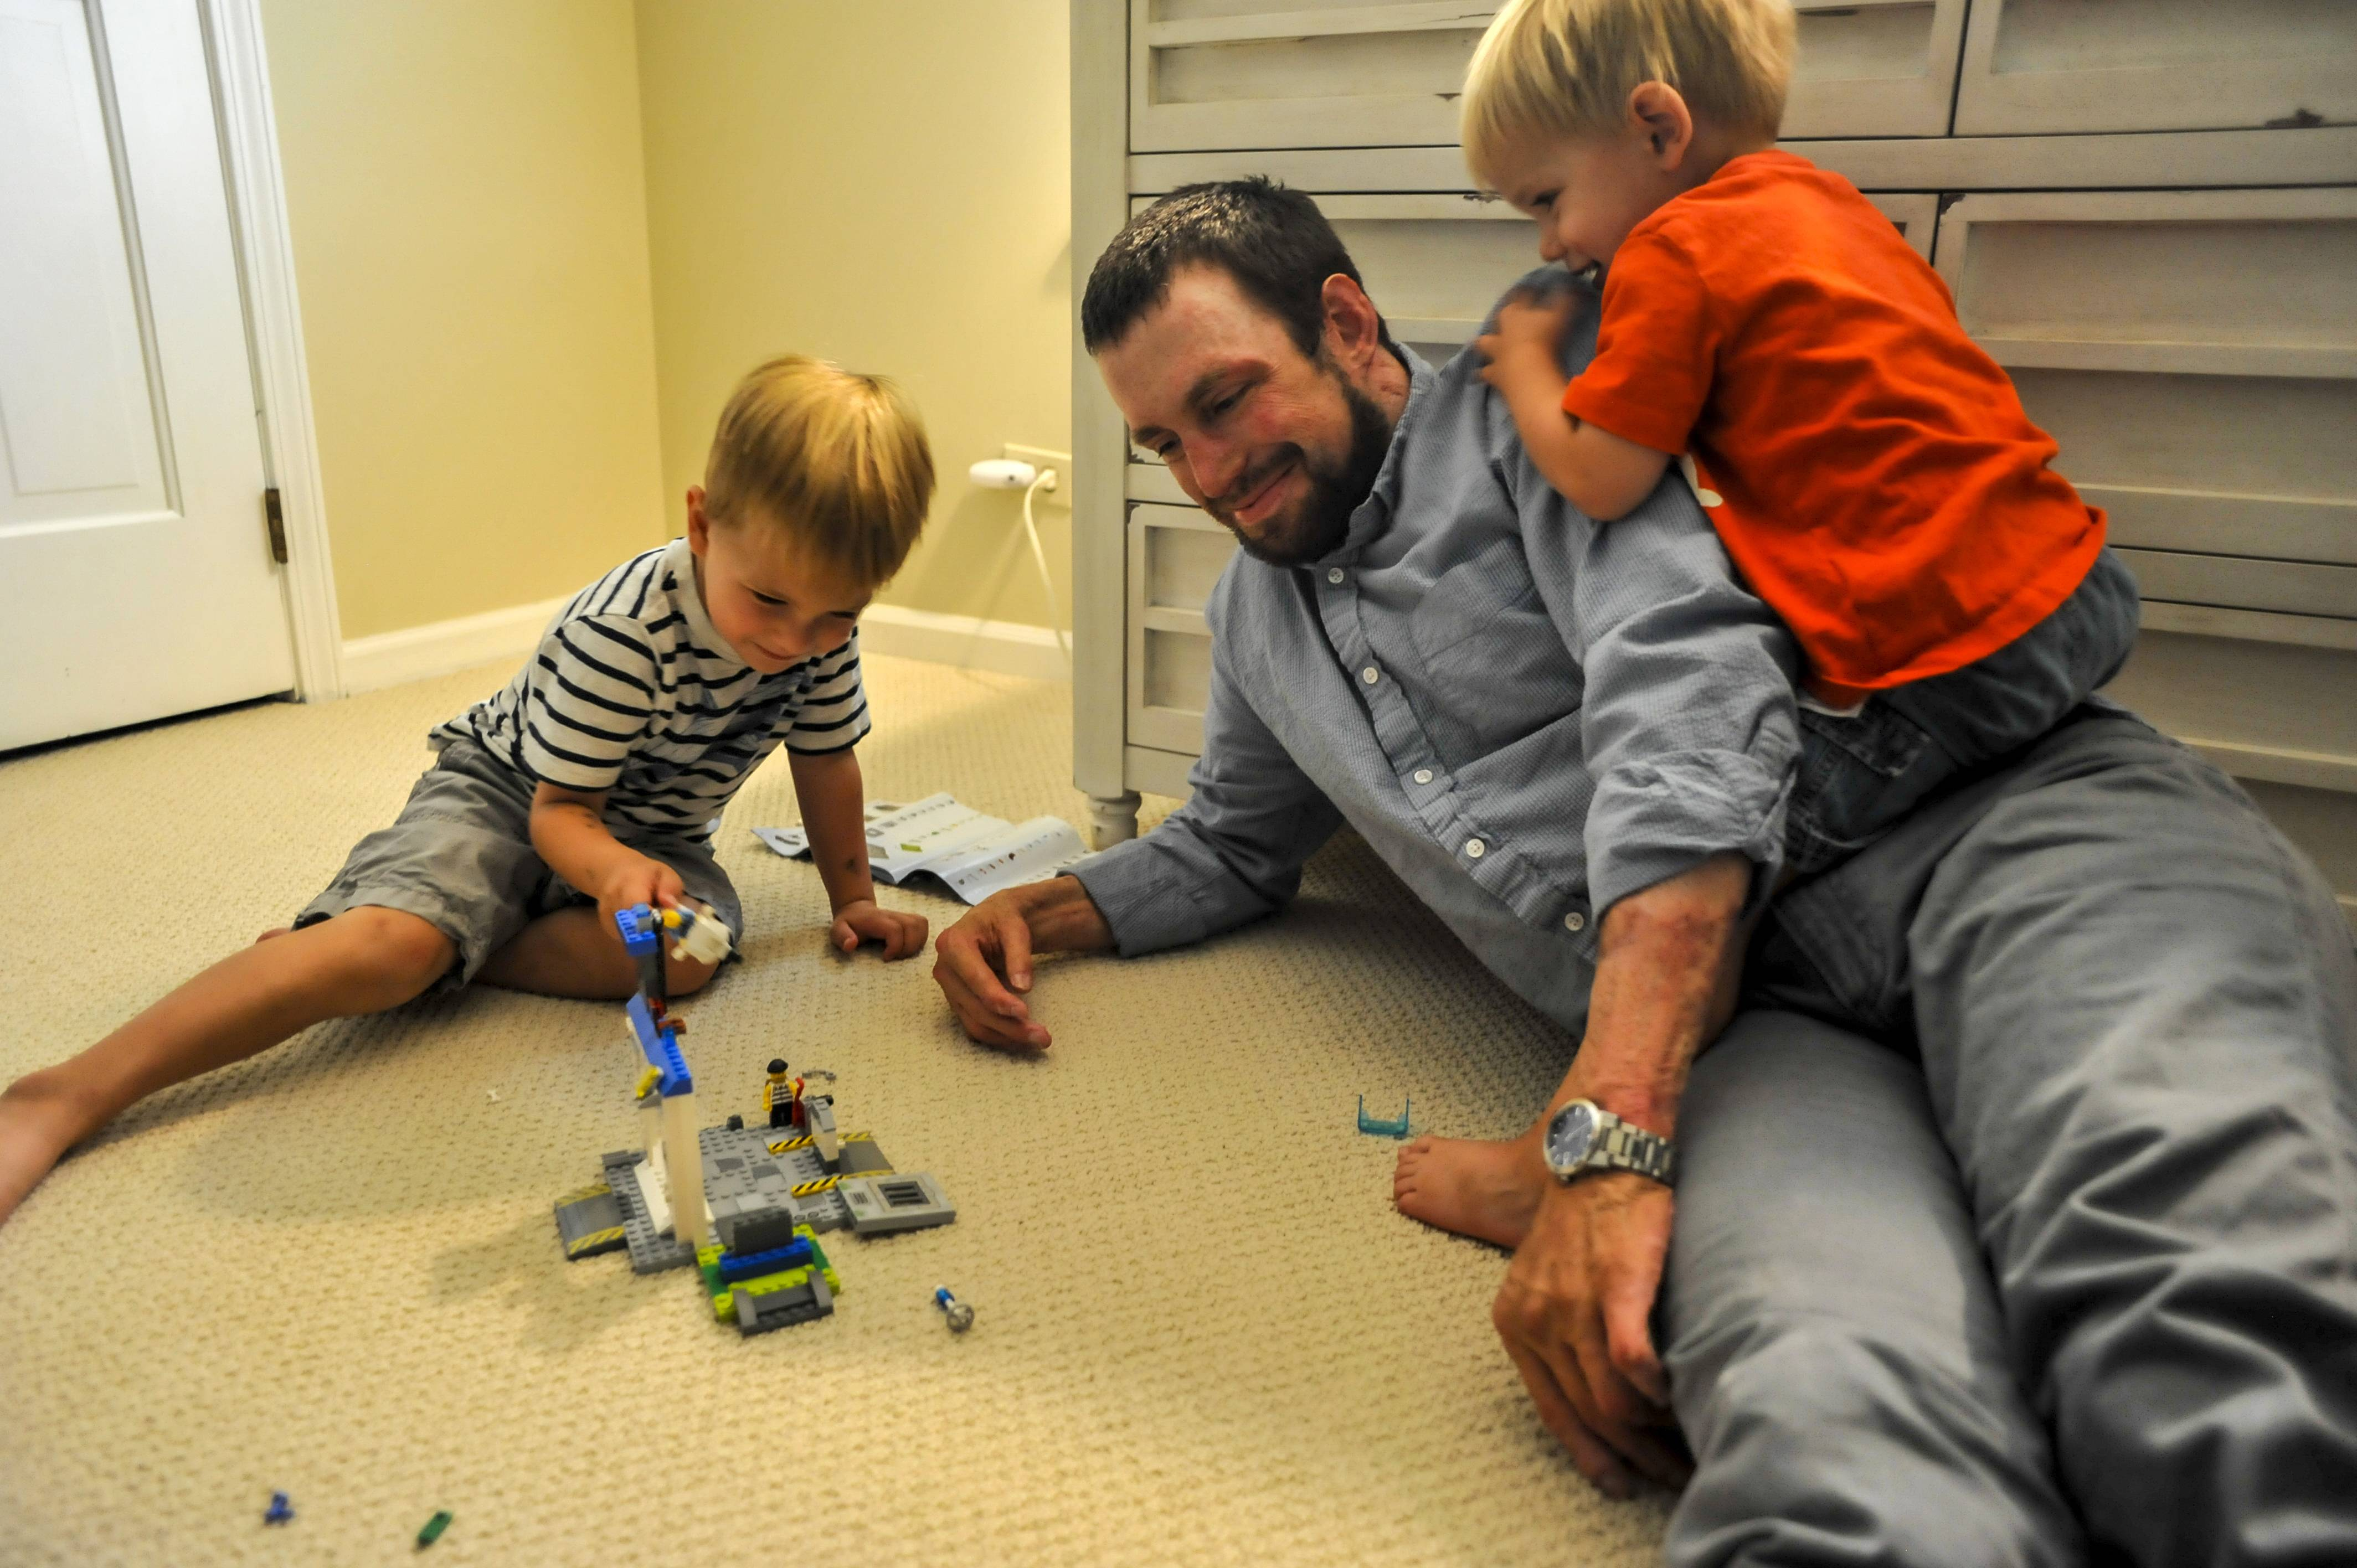 Hospitalized for four months after he was wounded by a roadside bomb in Afghanistan in 2012, retired Army Maj. Breg Hughes has recovered to the point where he can play with his children Brogan, 3, and Gavin, 2, in their Barrington home.